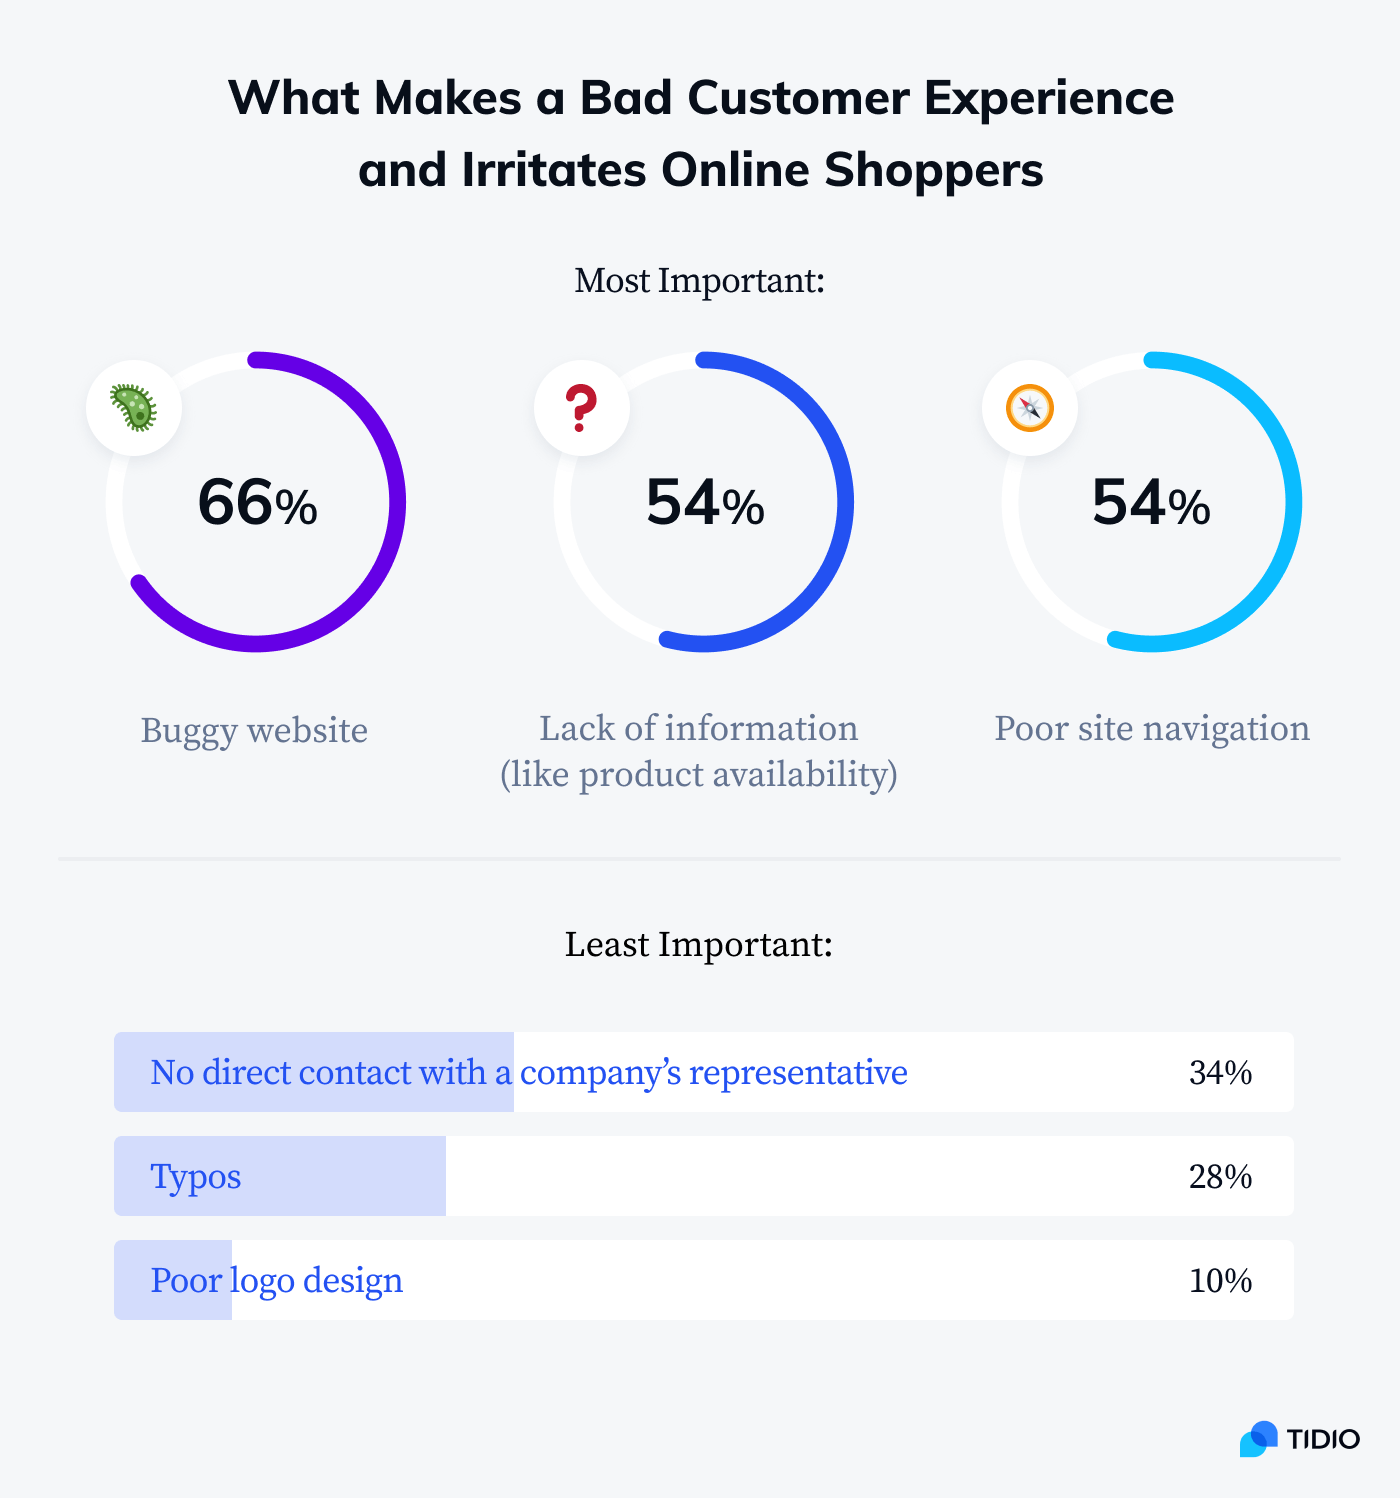 What makes a bad customer experience and irritates online shoppers statistics